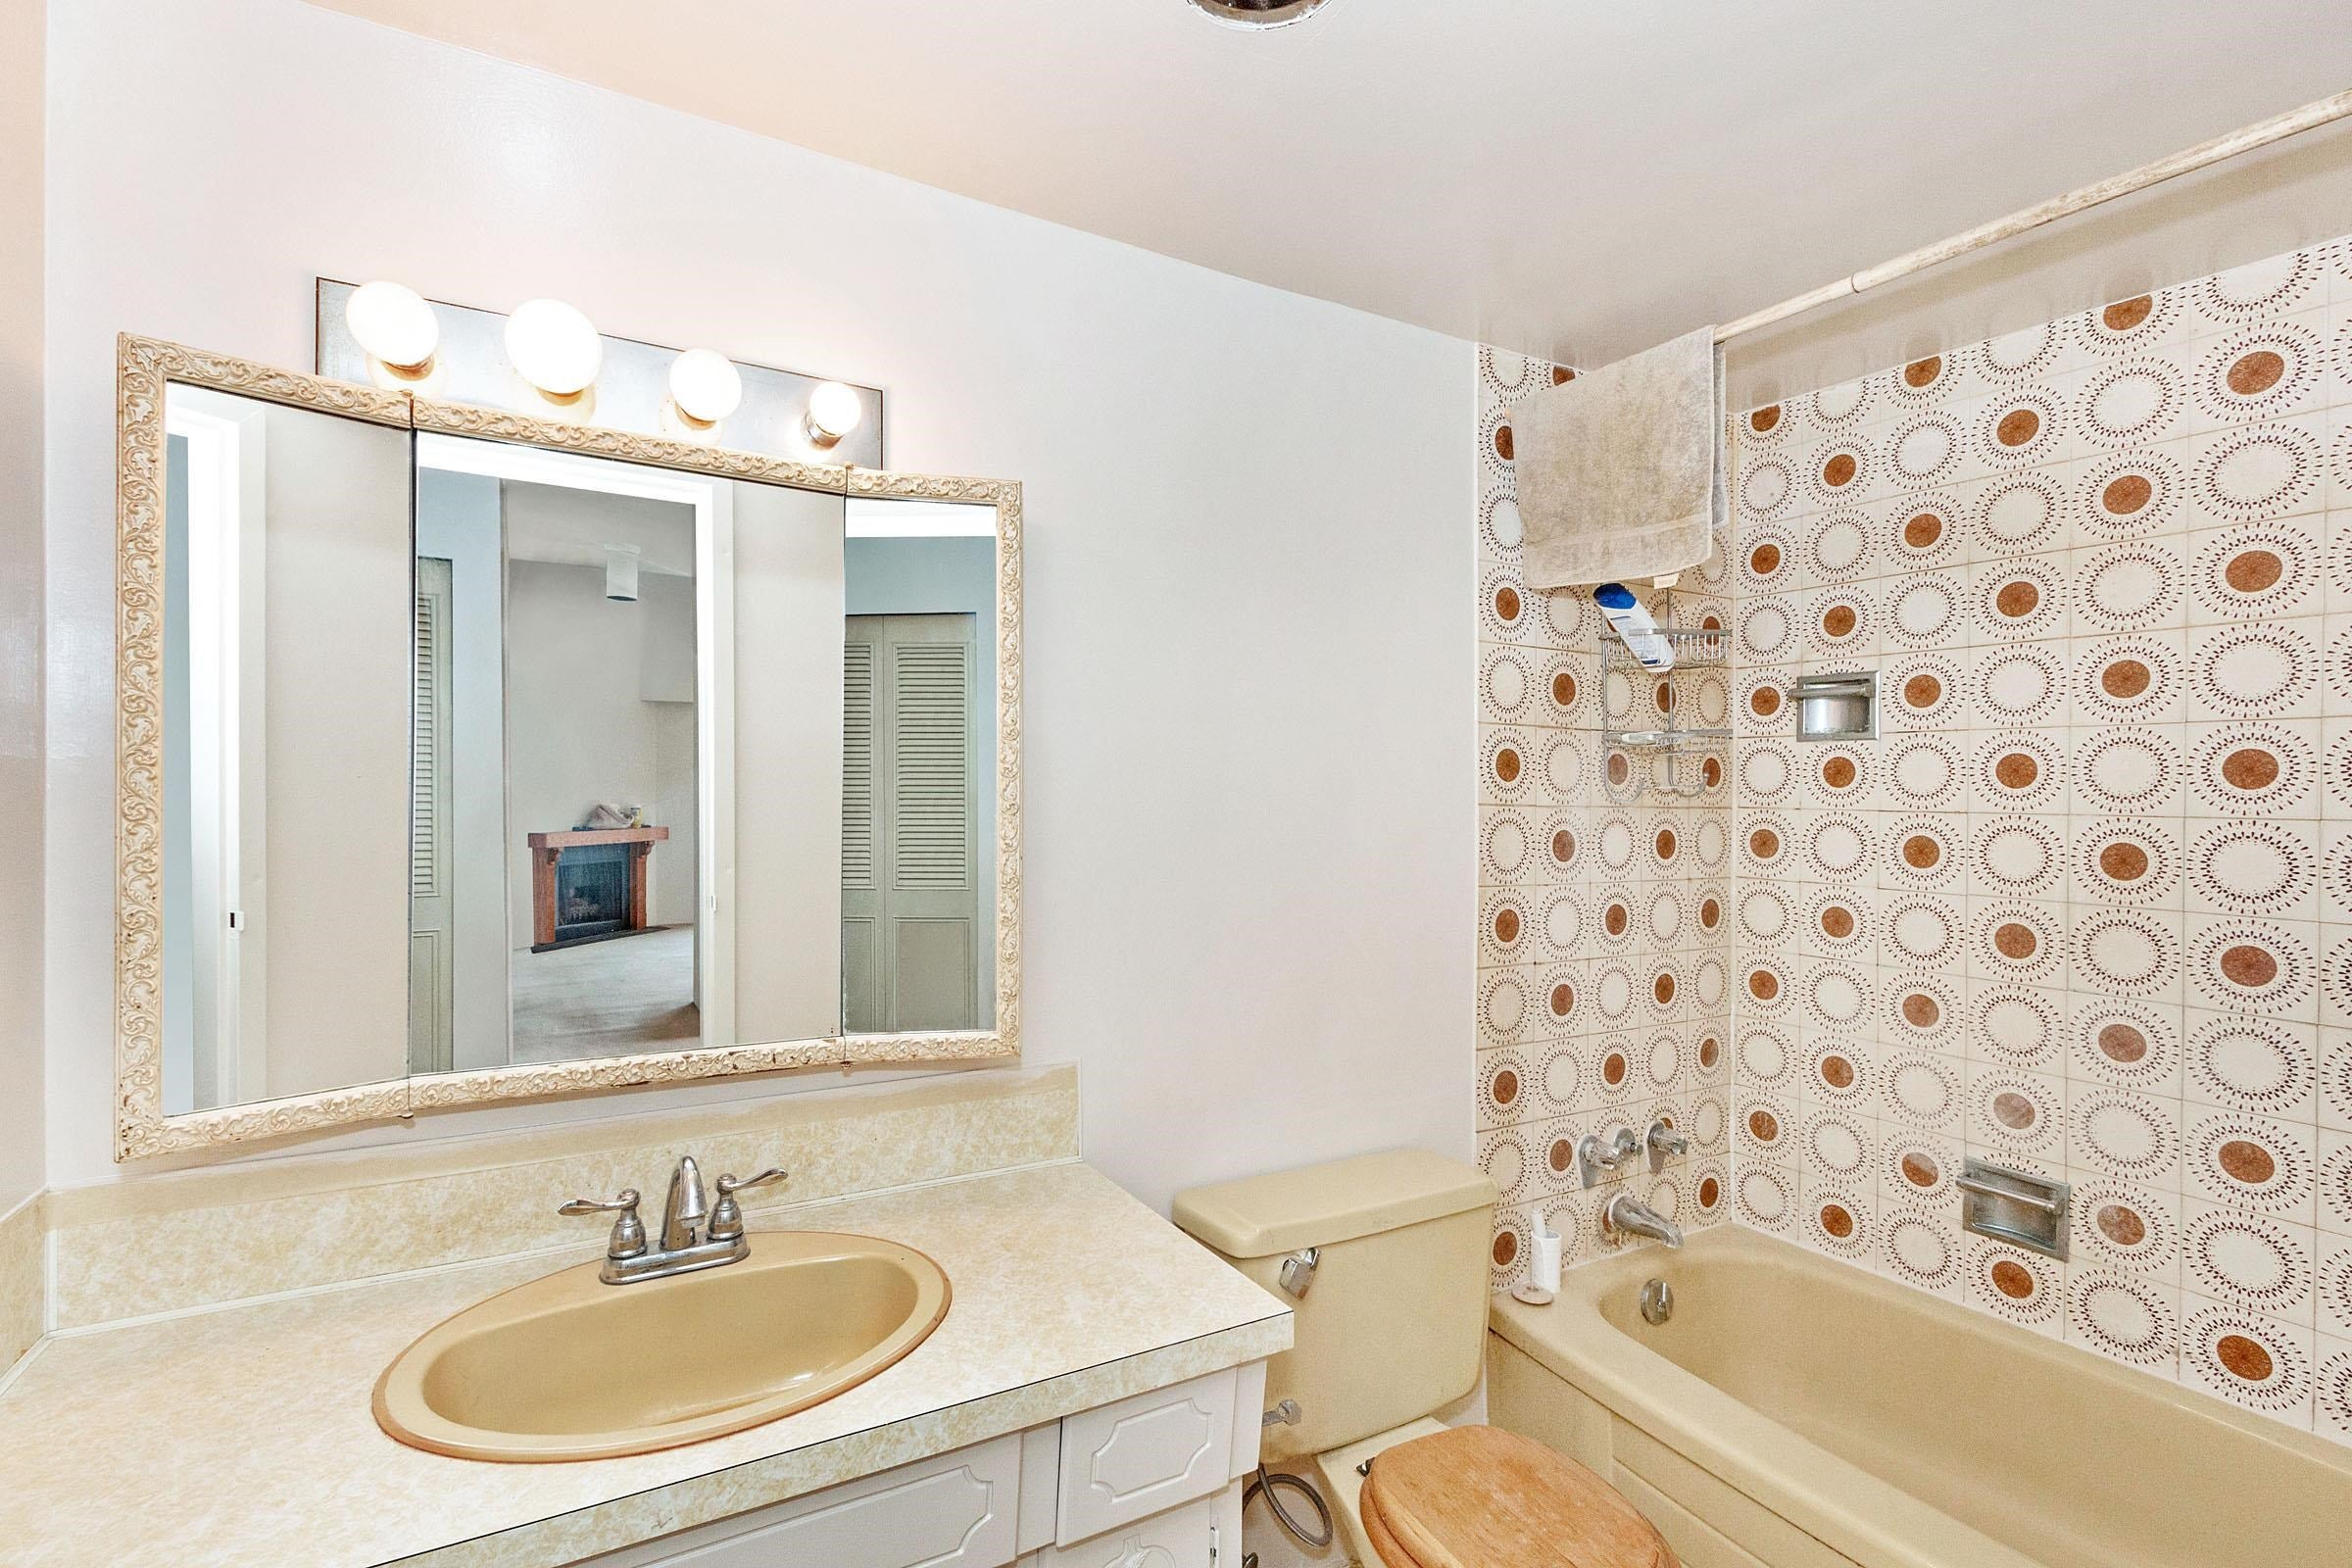 301 264 W 2ND STREET - Lower Lonsdale Apartment/Condo for sale, 2 Bedrooms (R2625527) - #15